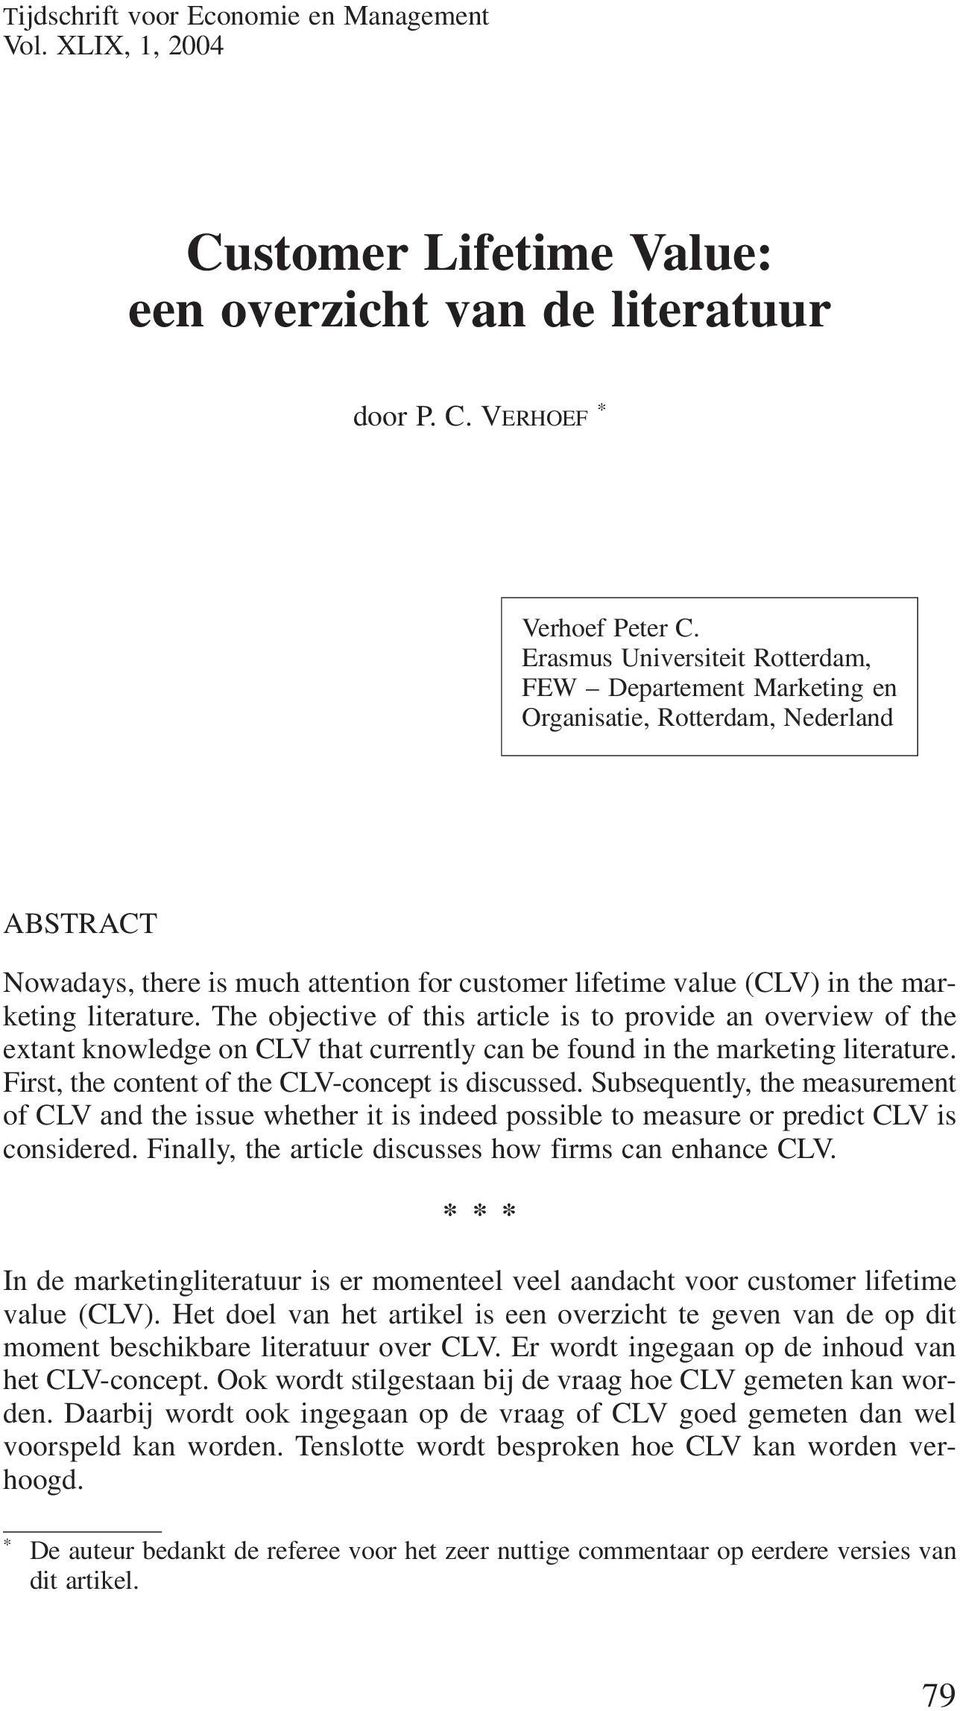 The objective of this article is to provide an overview of the extant knowledge on CLV that currently can be found in the marketing literature. First, the content of the CLV-concept is discussed.